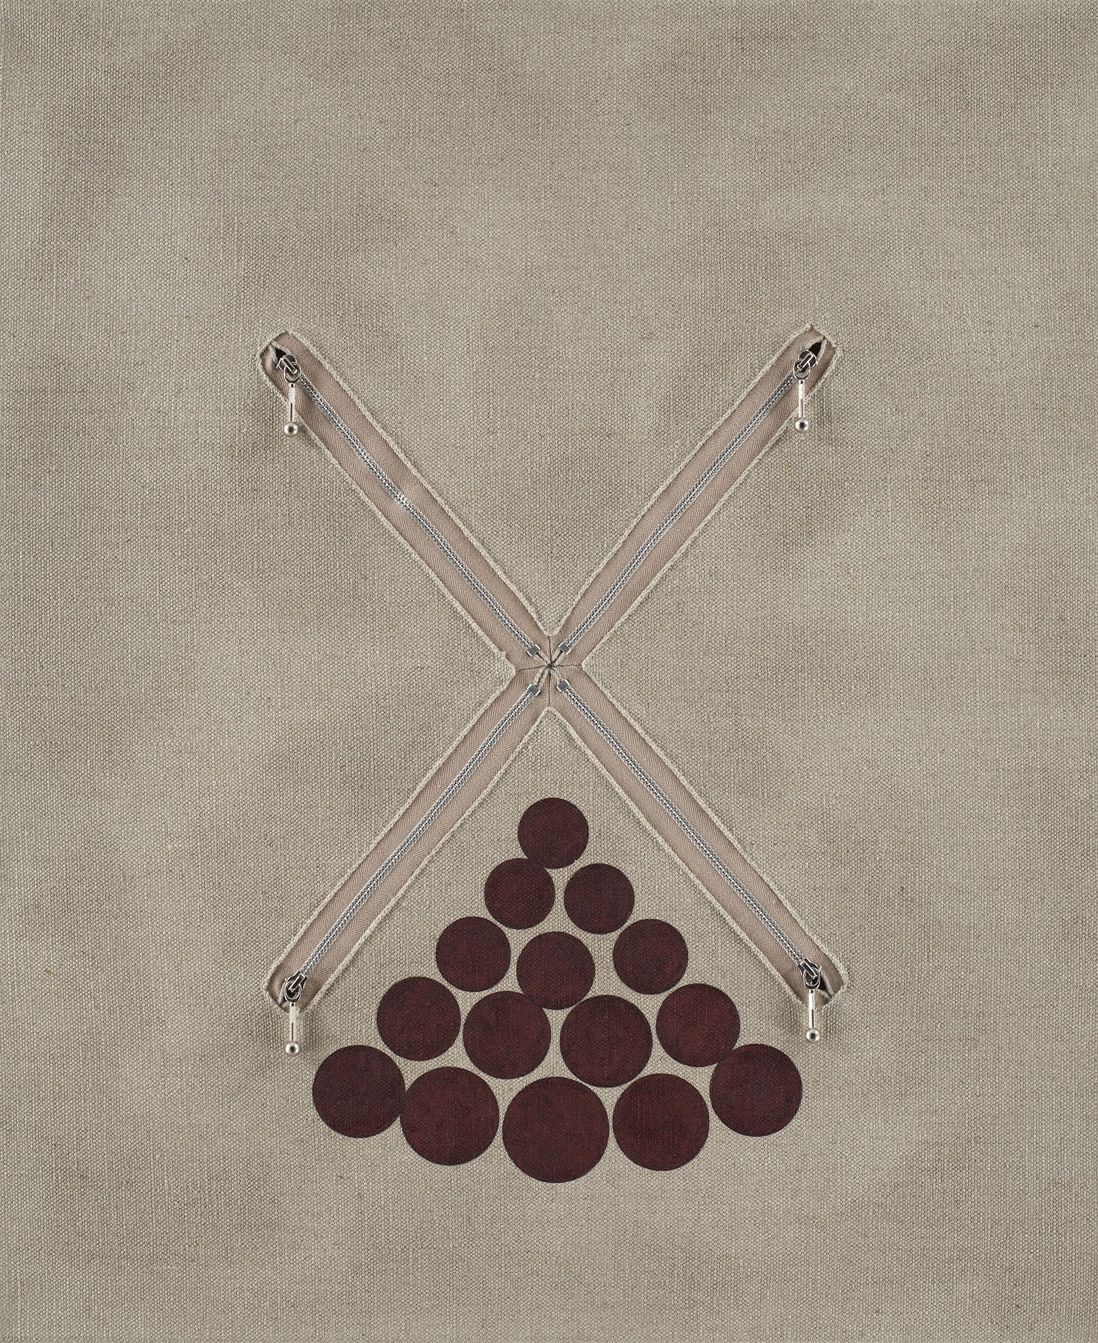 linen panel with red dots and zippers in an X pattern by donald moffett